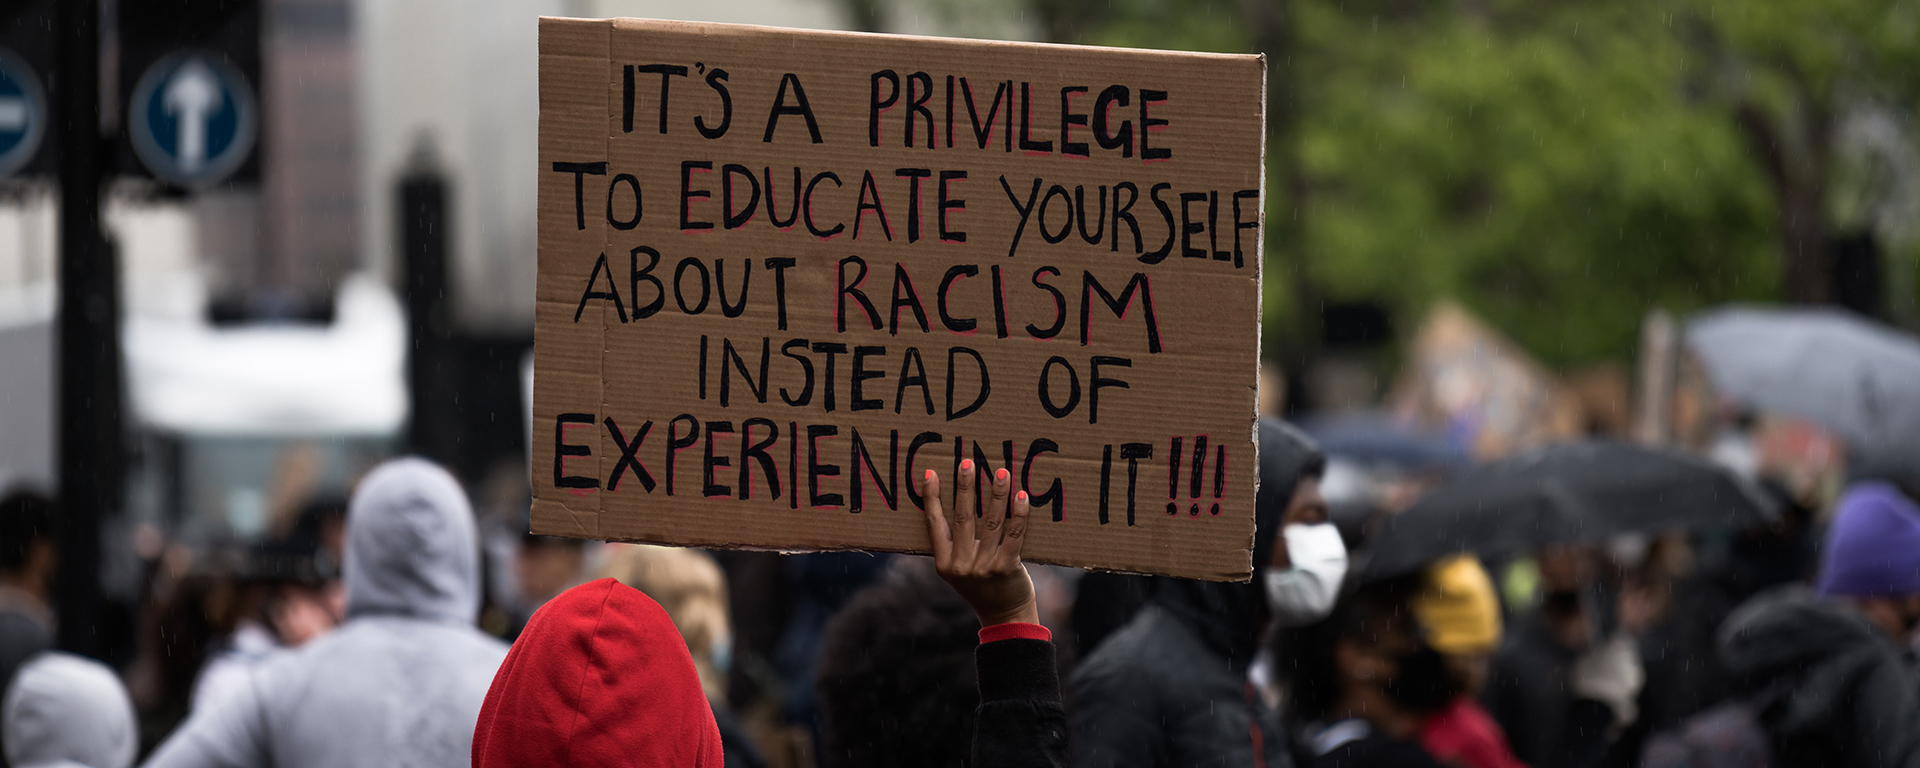 A Black person is seen from behind at a protest, holding a sign. It reads: it's a privilege to educate yourself about racism instead of experiencing it